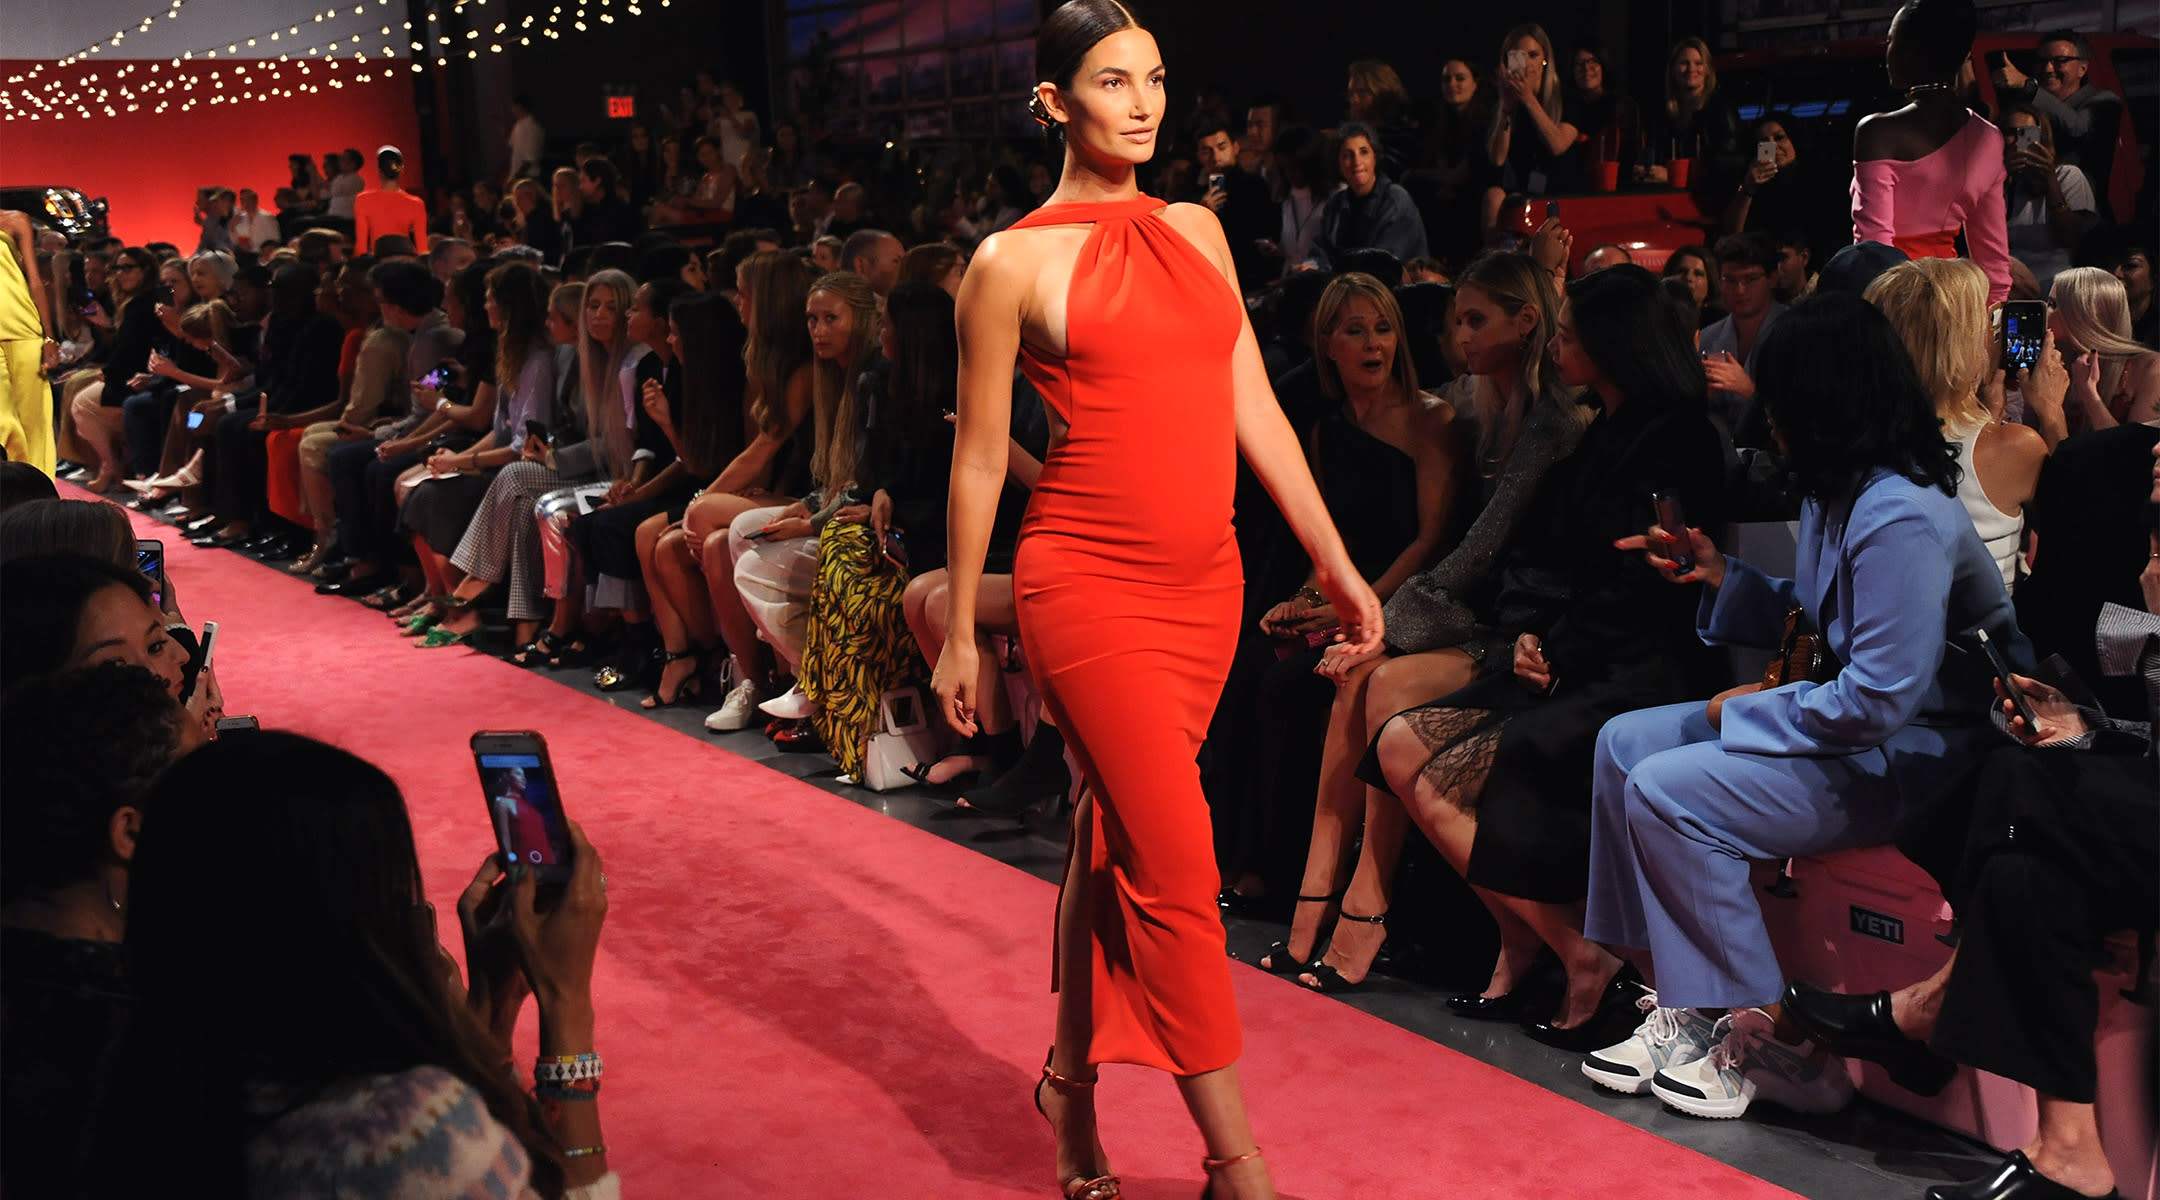 victorias secret model lily aldridge walks the brandon maxwell runway 5 months pregnant